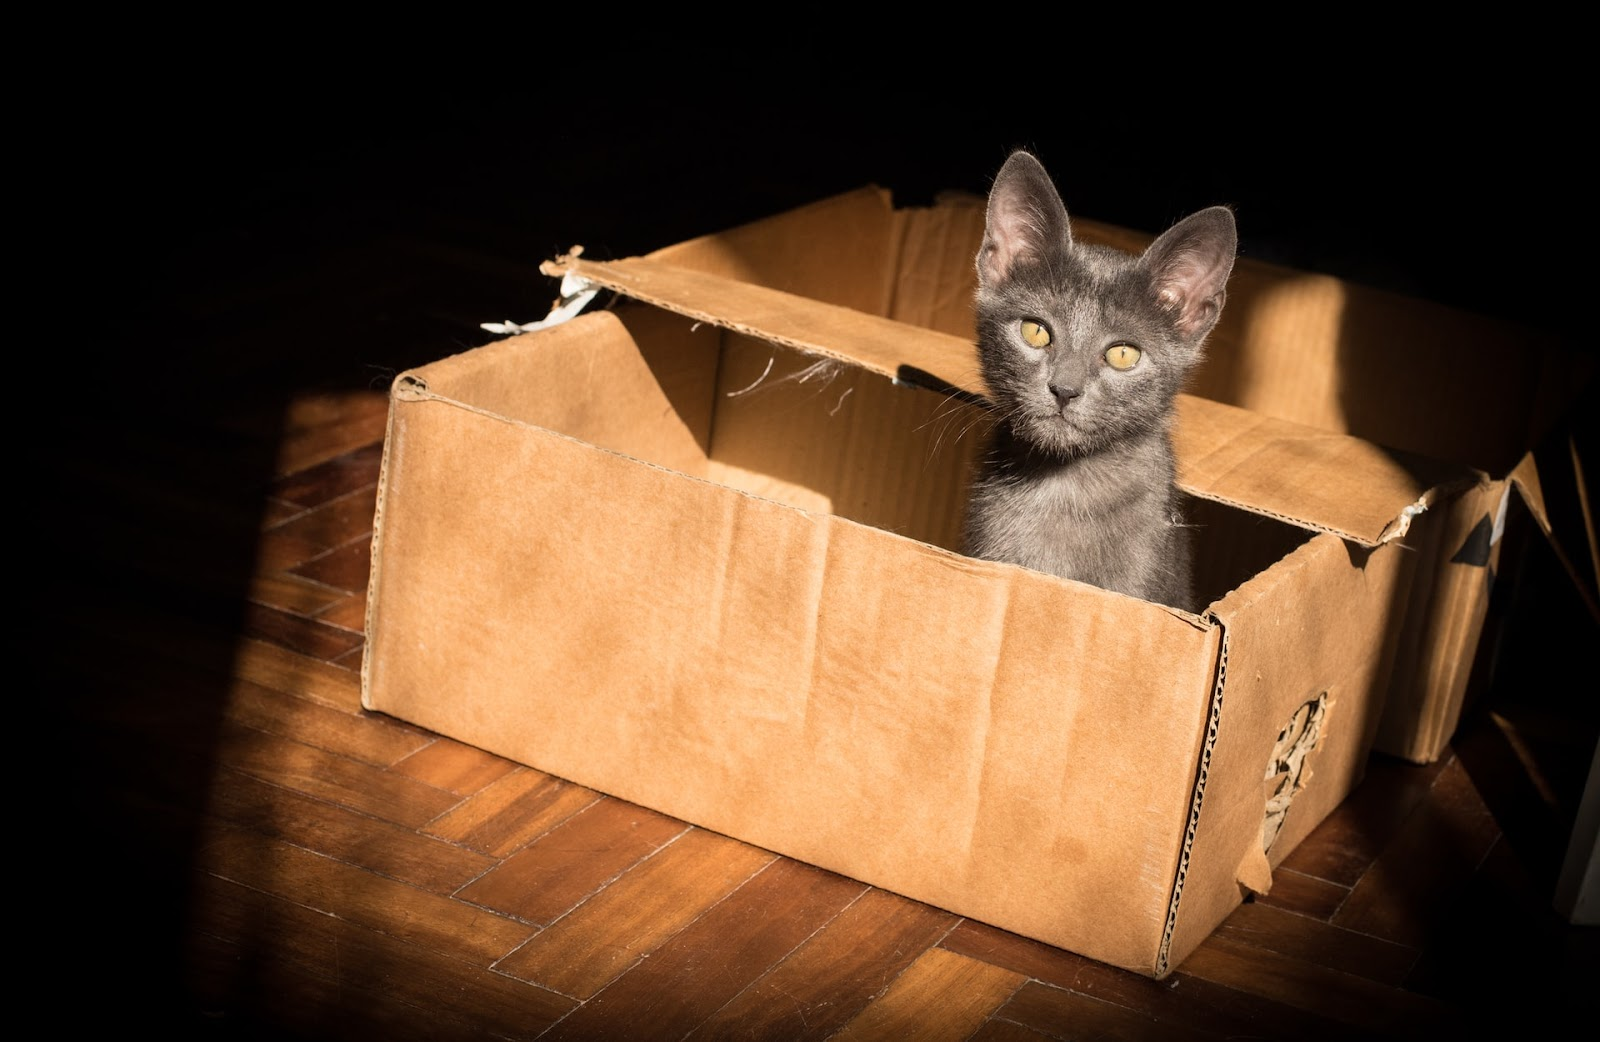 7 reasons cat chew and destroy cardboard boxes